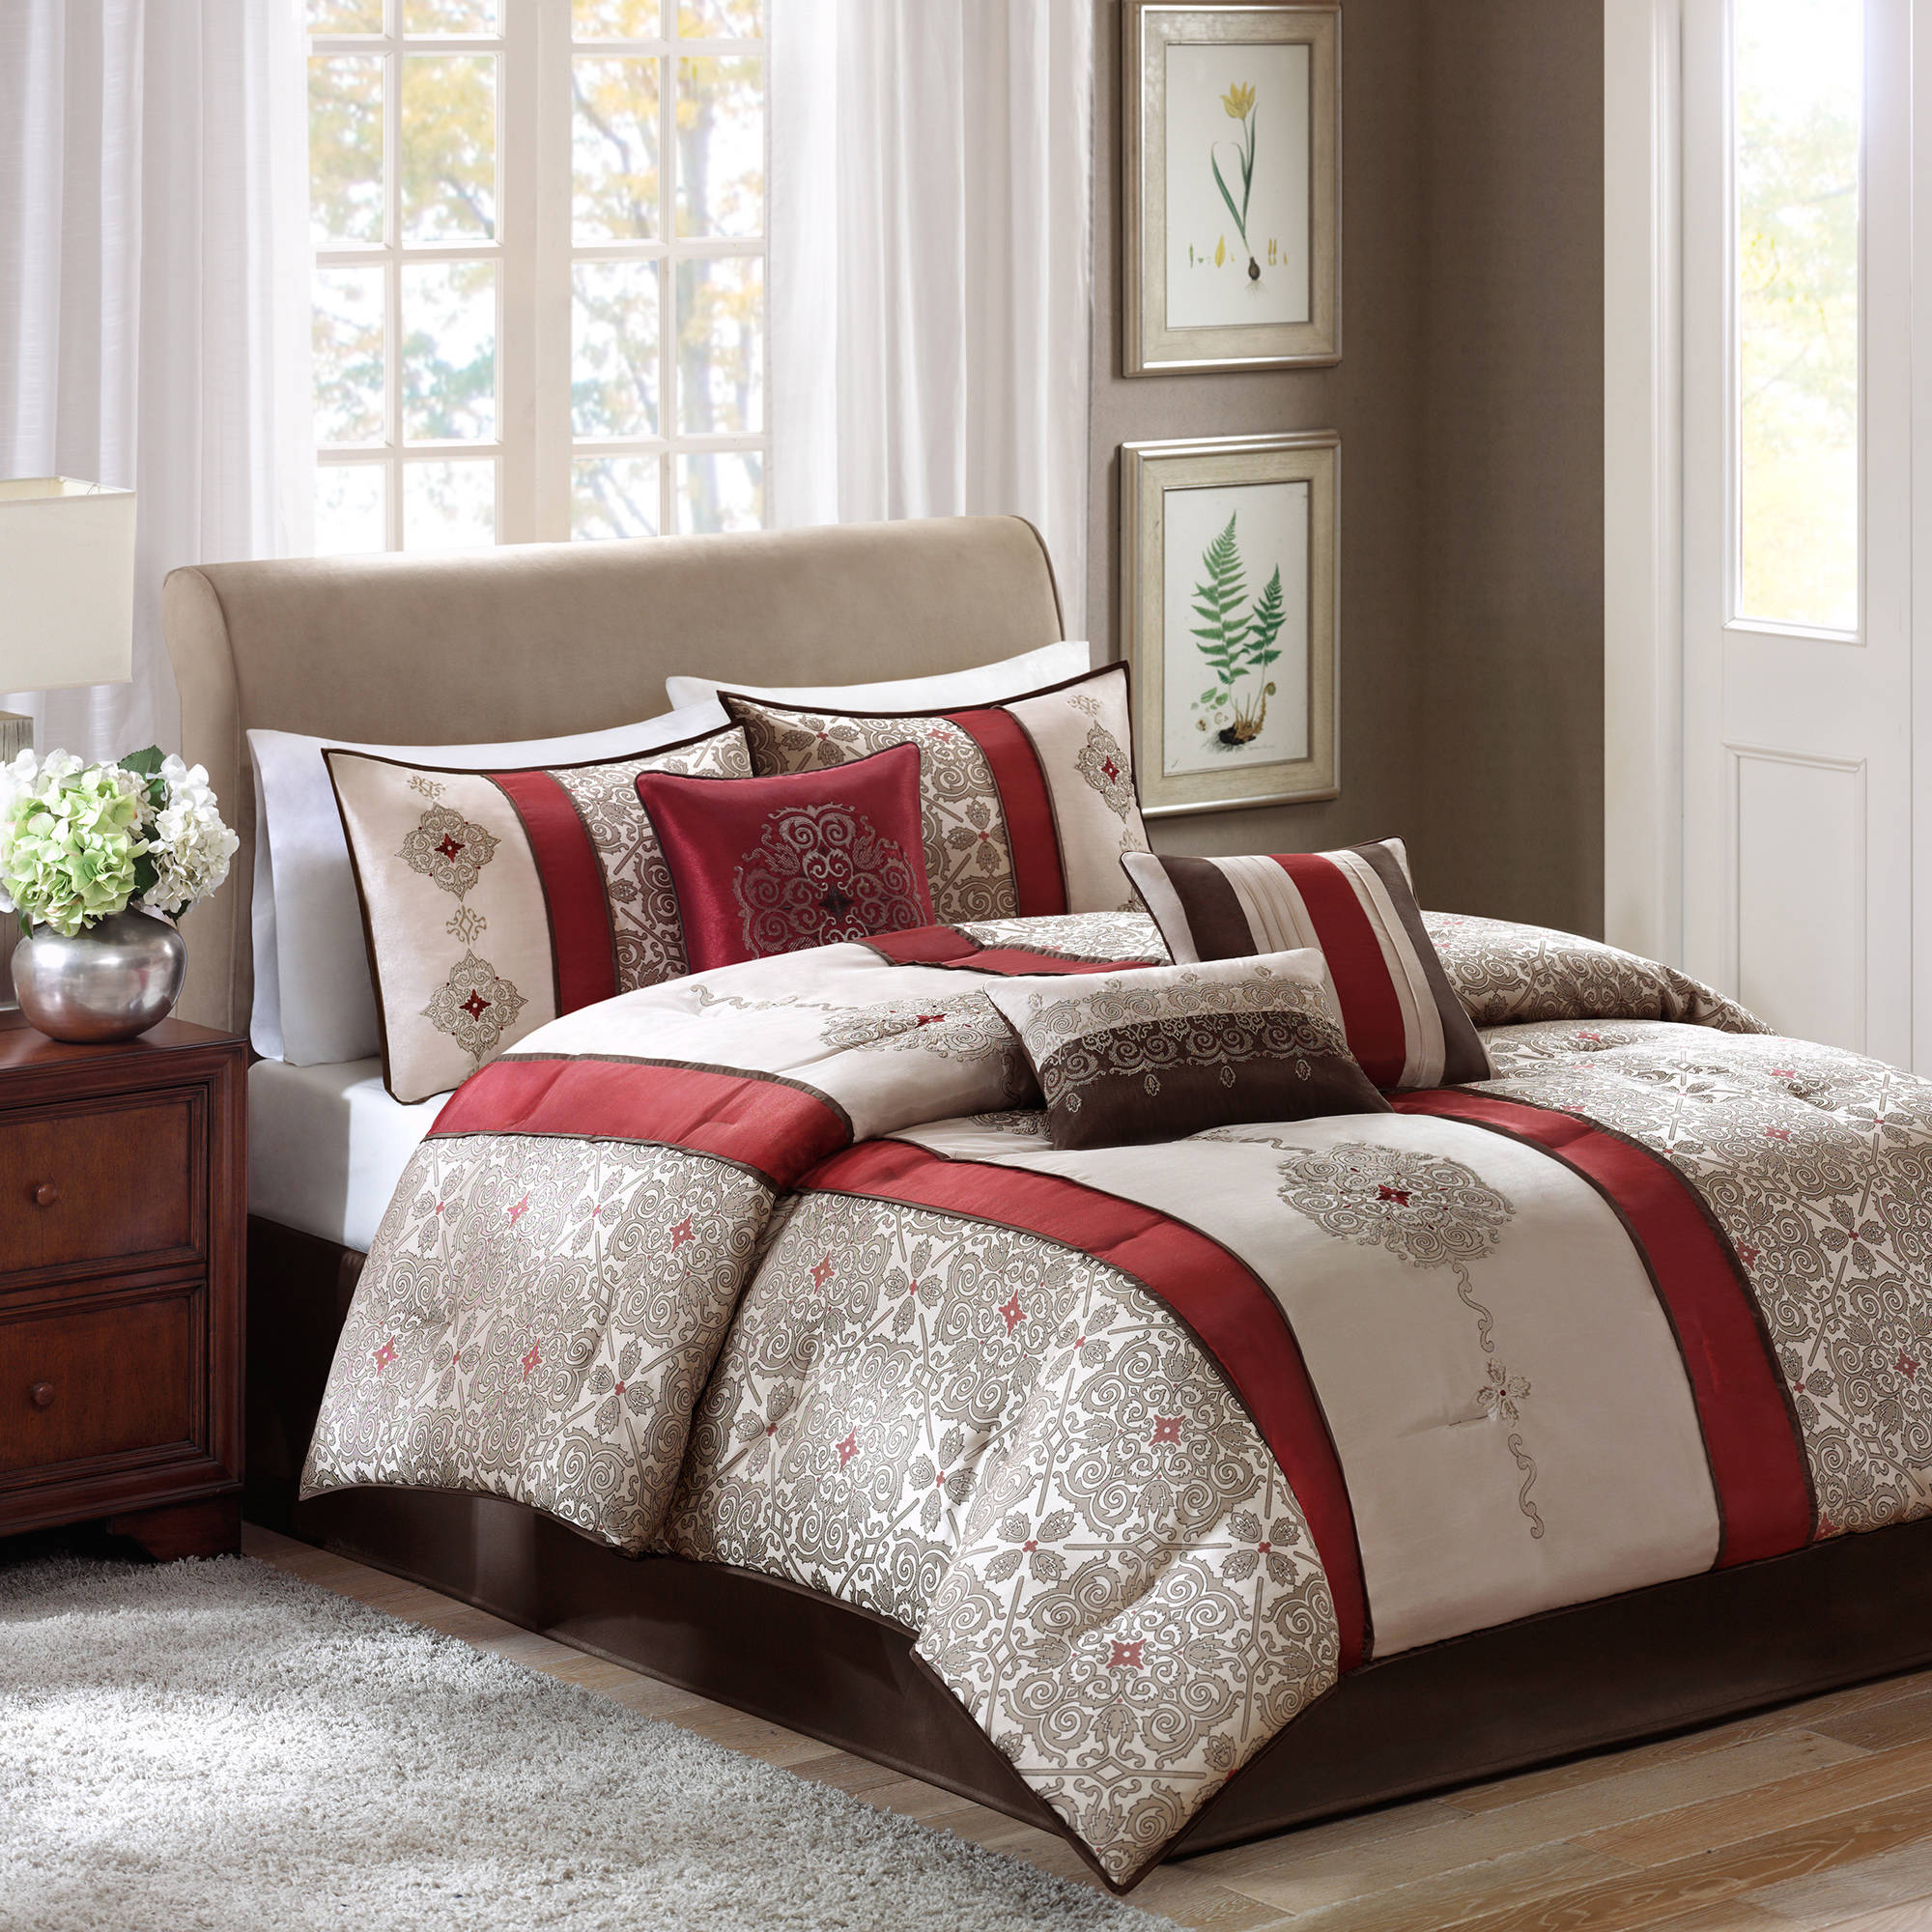 red bedroom set. Picture 1 of 6  Madison Park Blaine Taupe Red Brown Stripe Cal King 7 PC Comforter